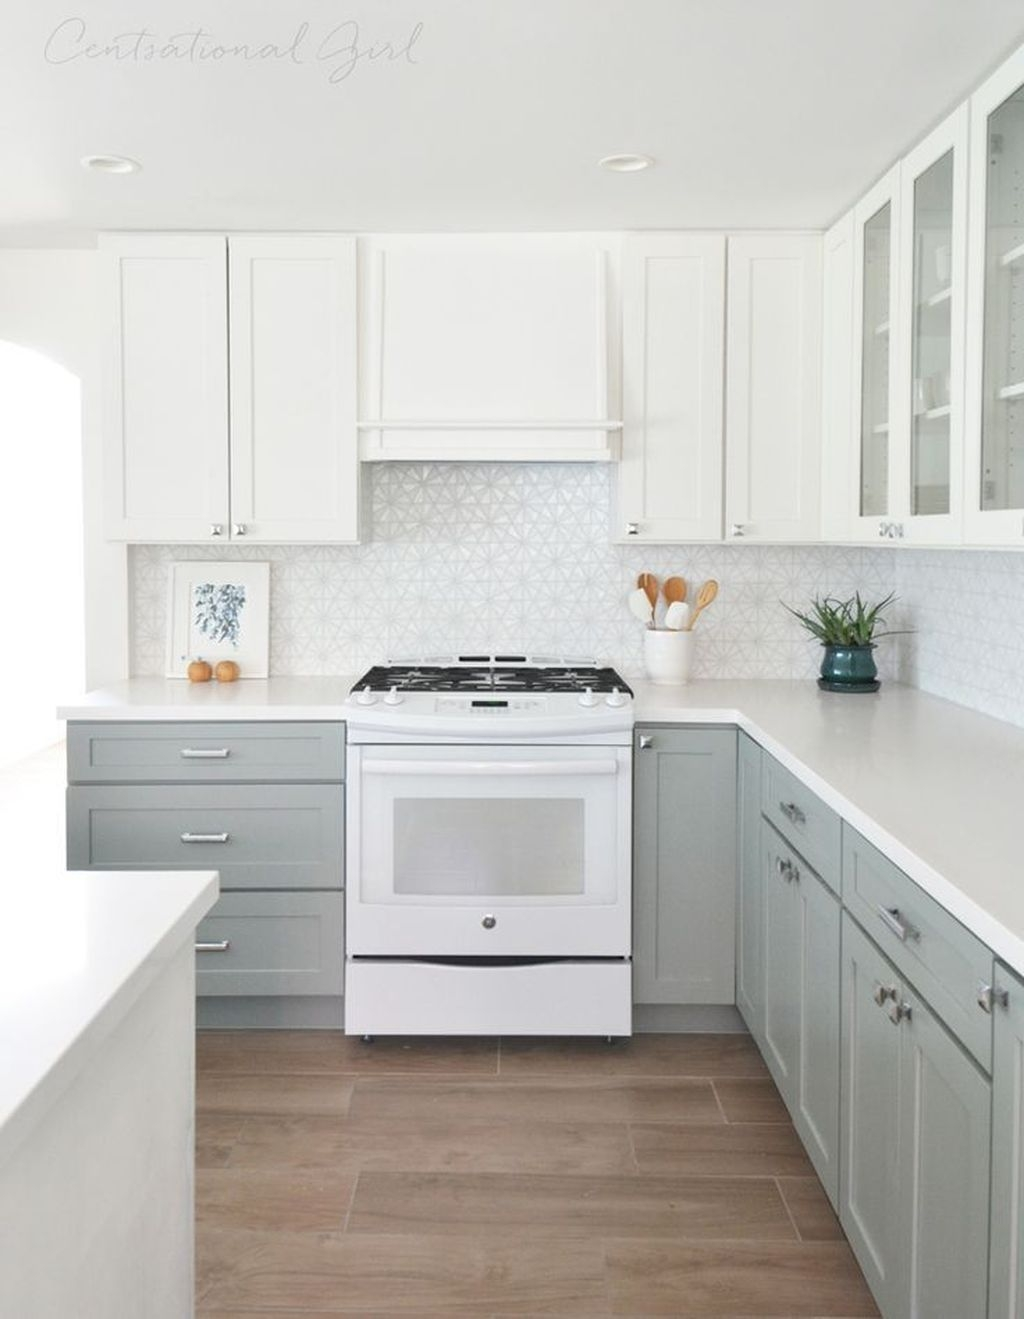 Captivating White Cabinets Design Ideas For Kitchen34